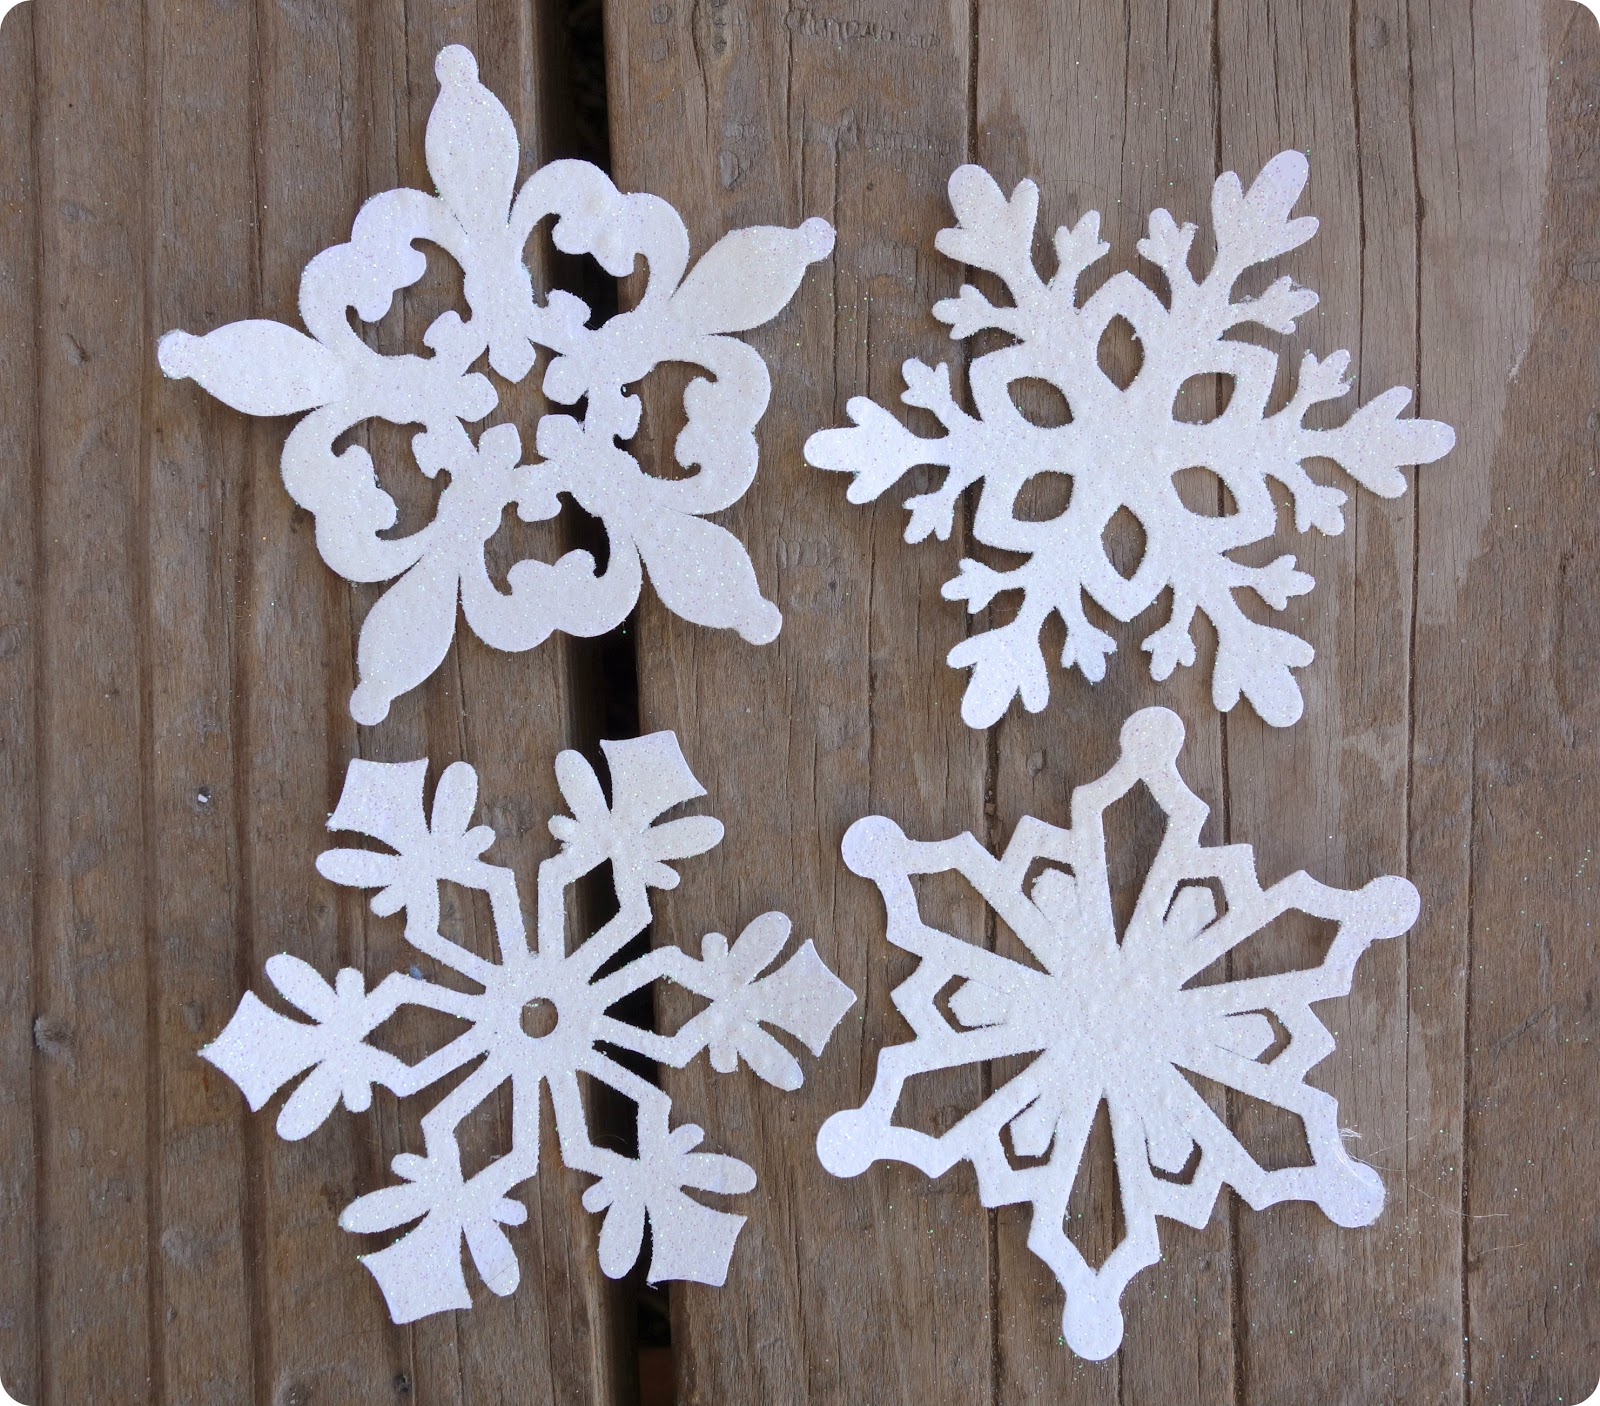 Cool diy snowflakes projects ellys diy blog diy snowflakes 2 solutioingenieria Images